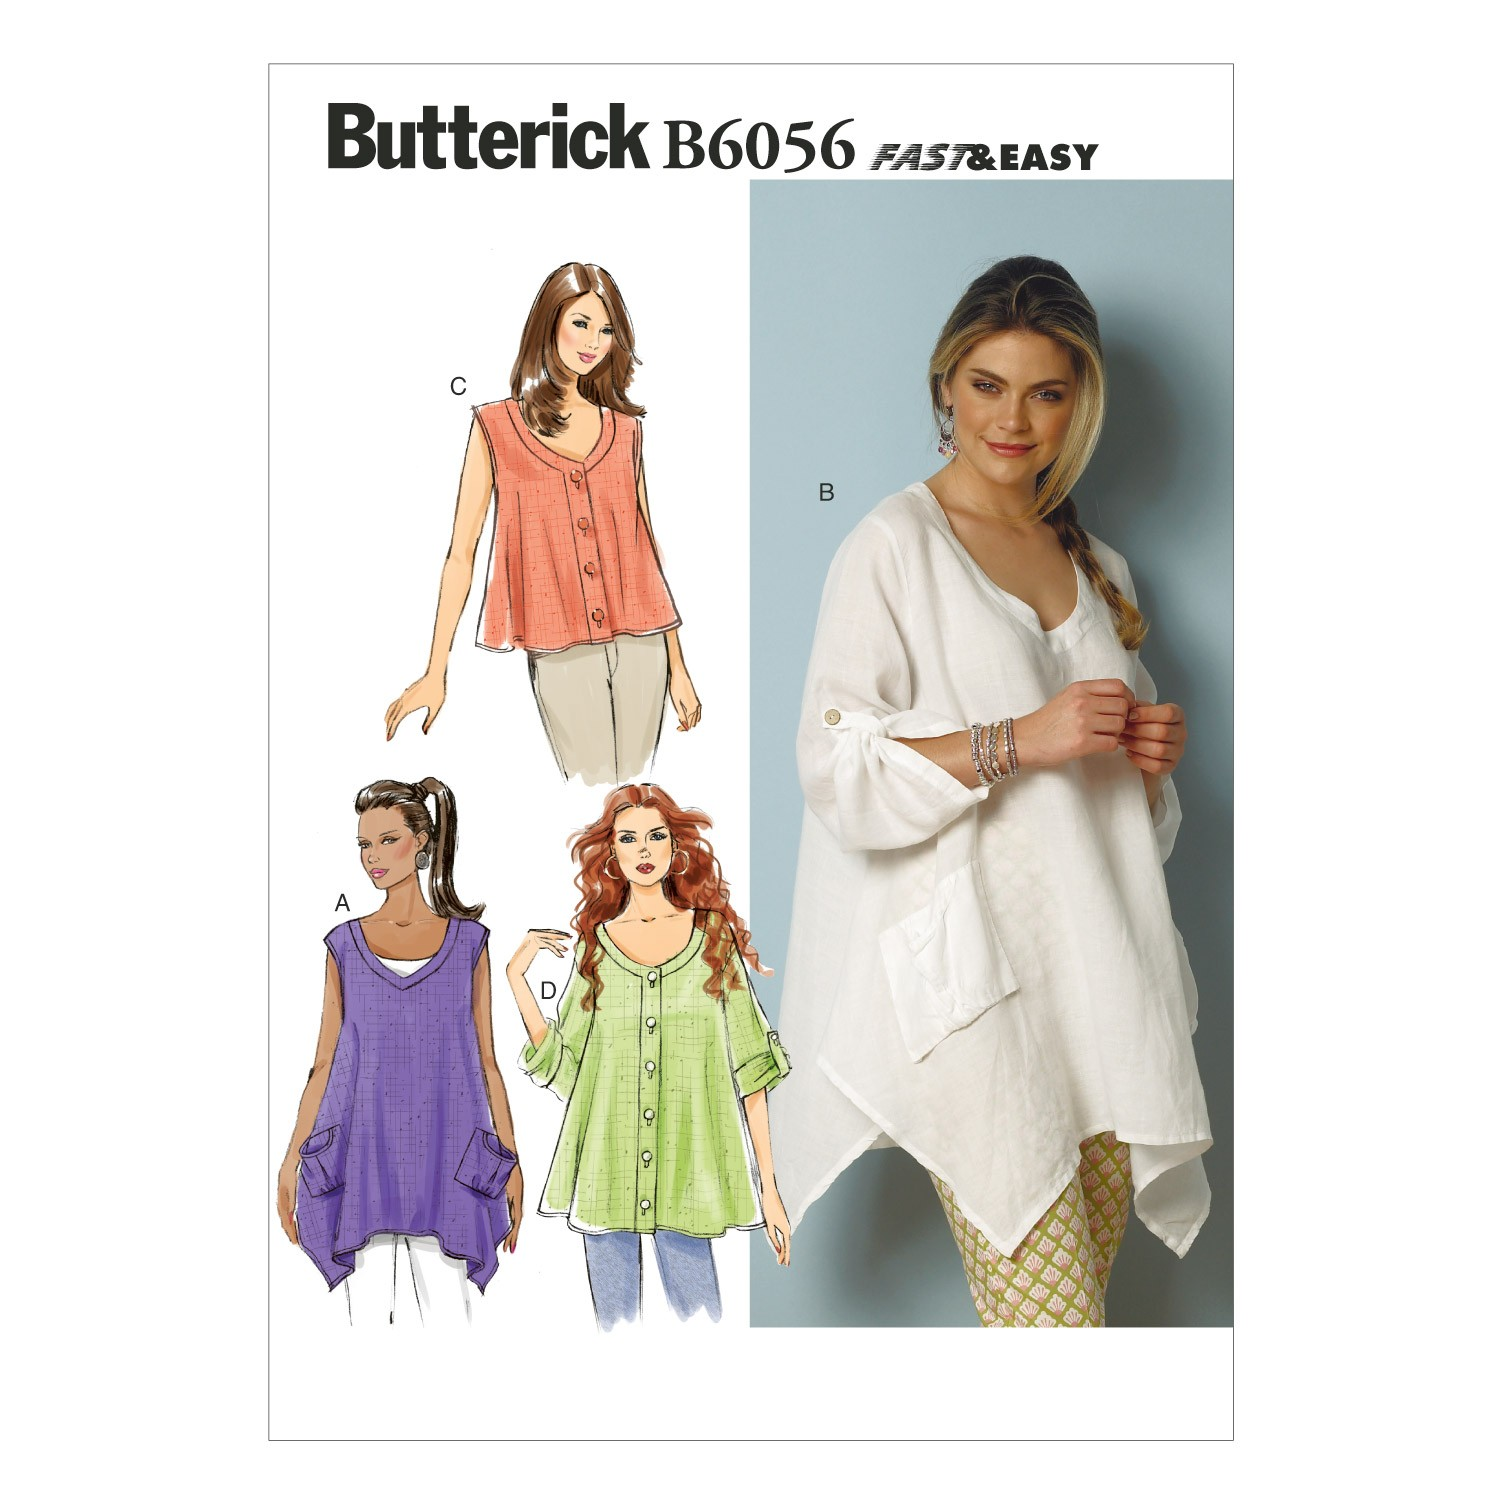 Butterick Sewing Pattern 6056 Misses' Loose Fitting Top